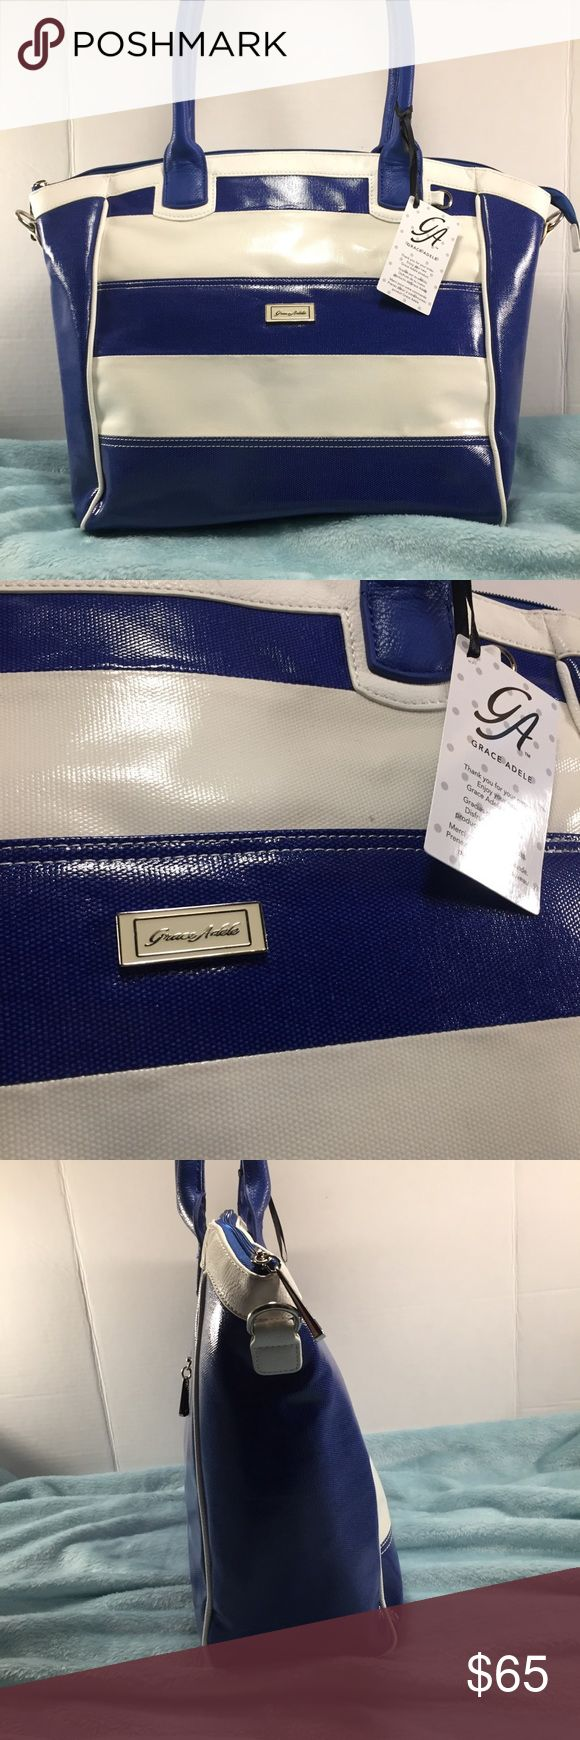 💗 GRACE ADELE NWT Blue & Cream Striped Bag GRACE ADELE NWT Blue and cream striped bag. Silver tone hardware, back zip pocket, large front slip pocket with snap closure, beautiful blue & white polkadot interior lining with multiple pockets. Clips inside connect to change shape into a slimmer bag. Absolutely stunning & in gorgeous , new condition. Did not come w/any shoulder strap although clips are available to attach one.  Perfect for use as a large tote, weekend travel bag, commuter laptop…